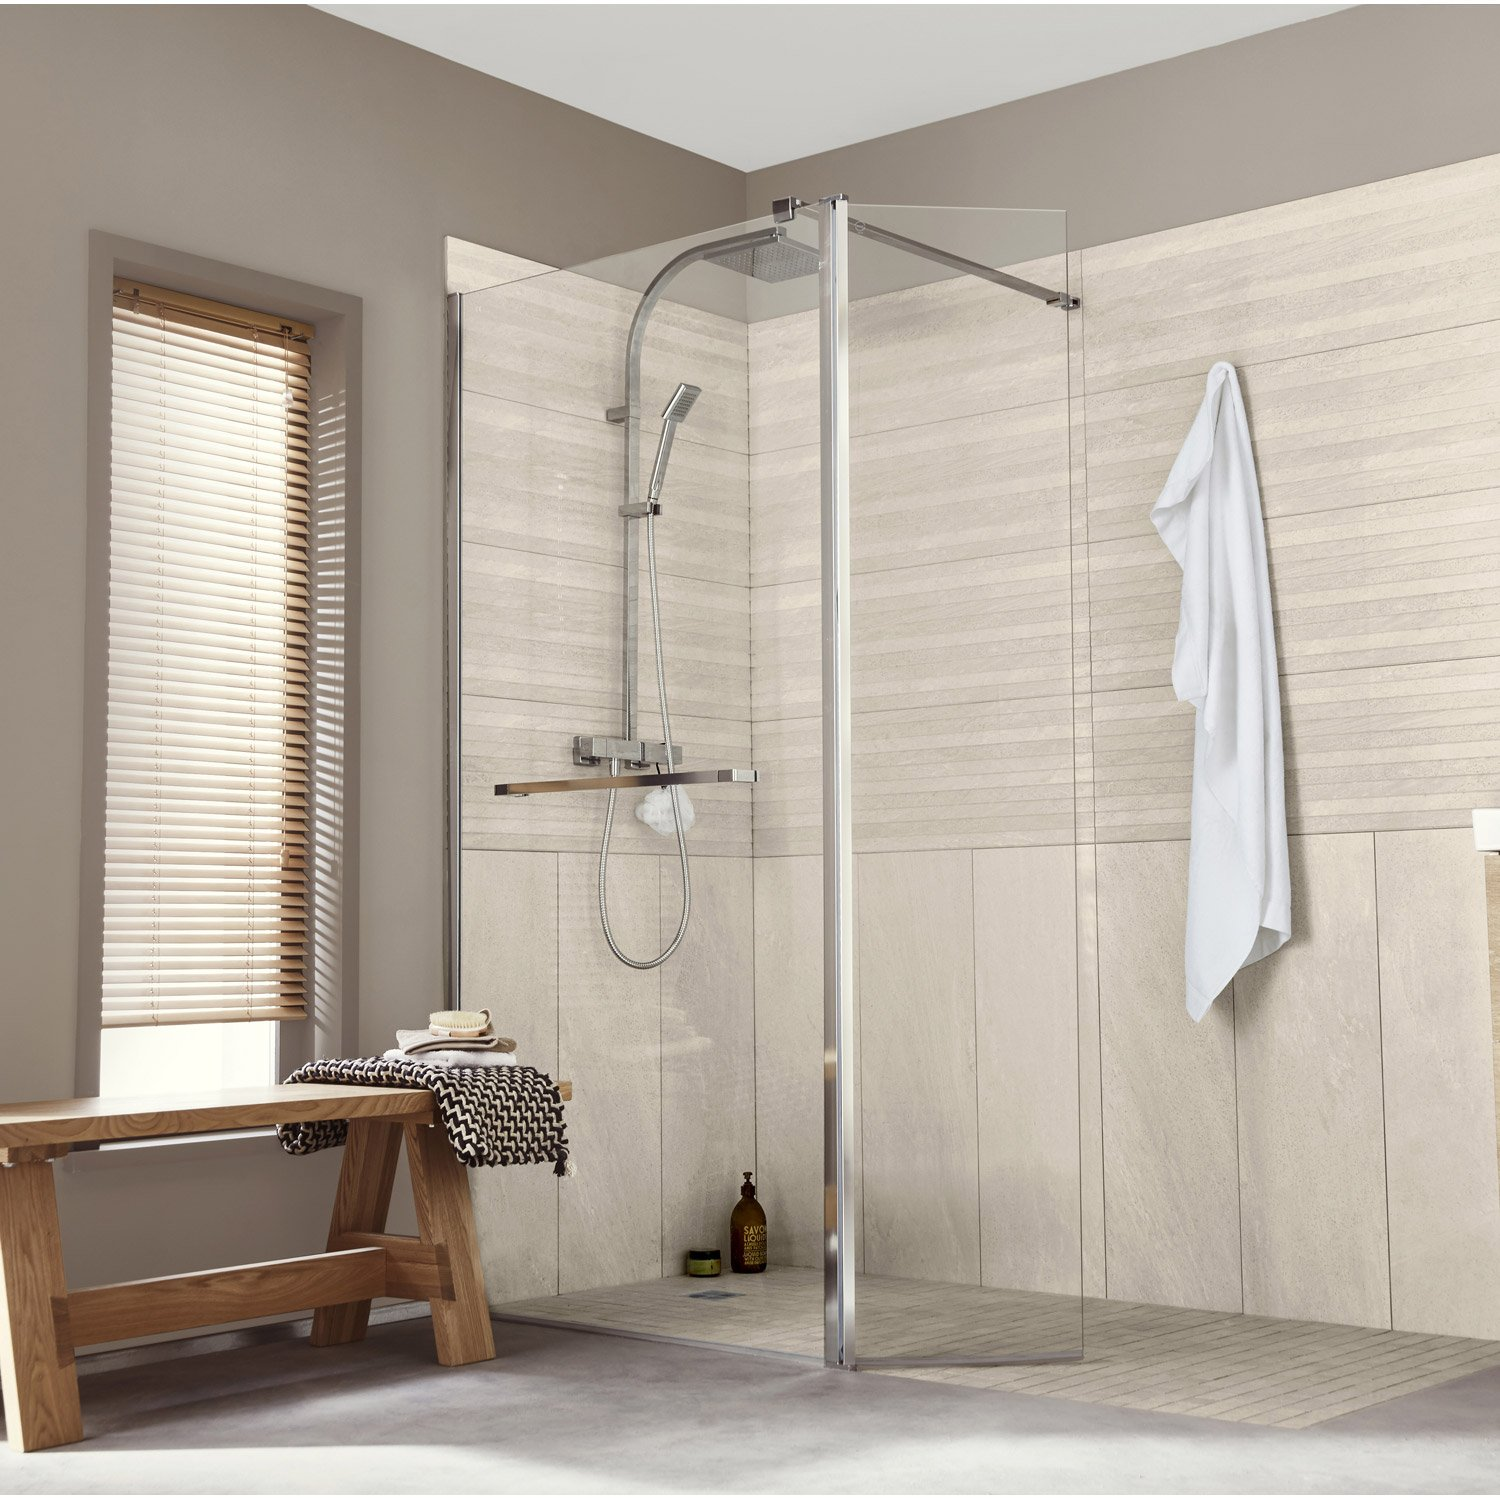 Revetement sol salle de bain leroy merlin for Carrelage douche italienne leroy merlin